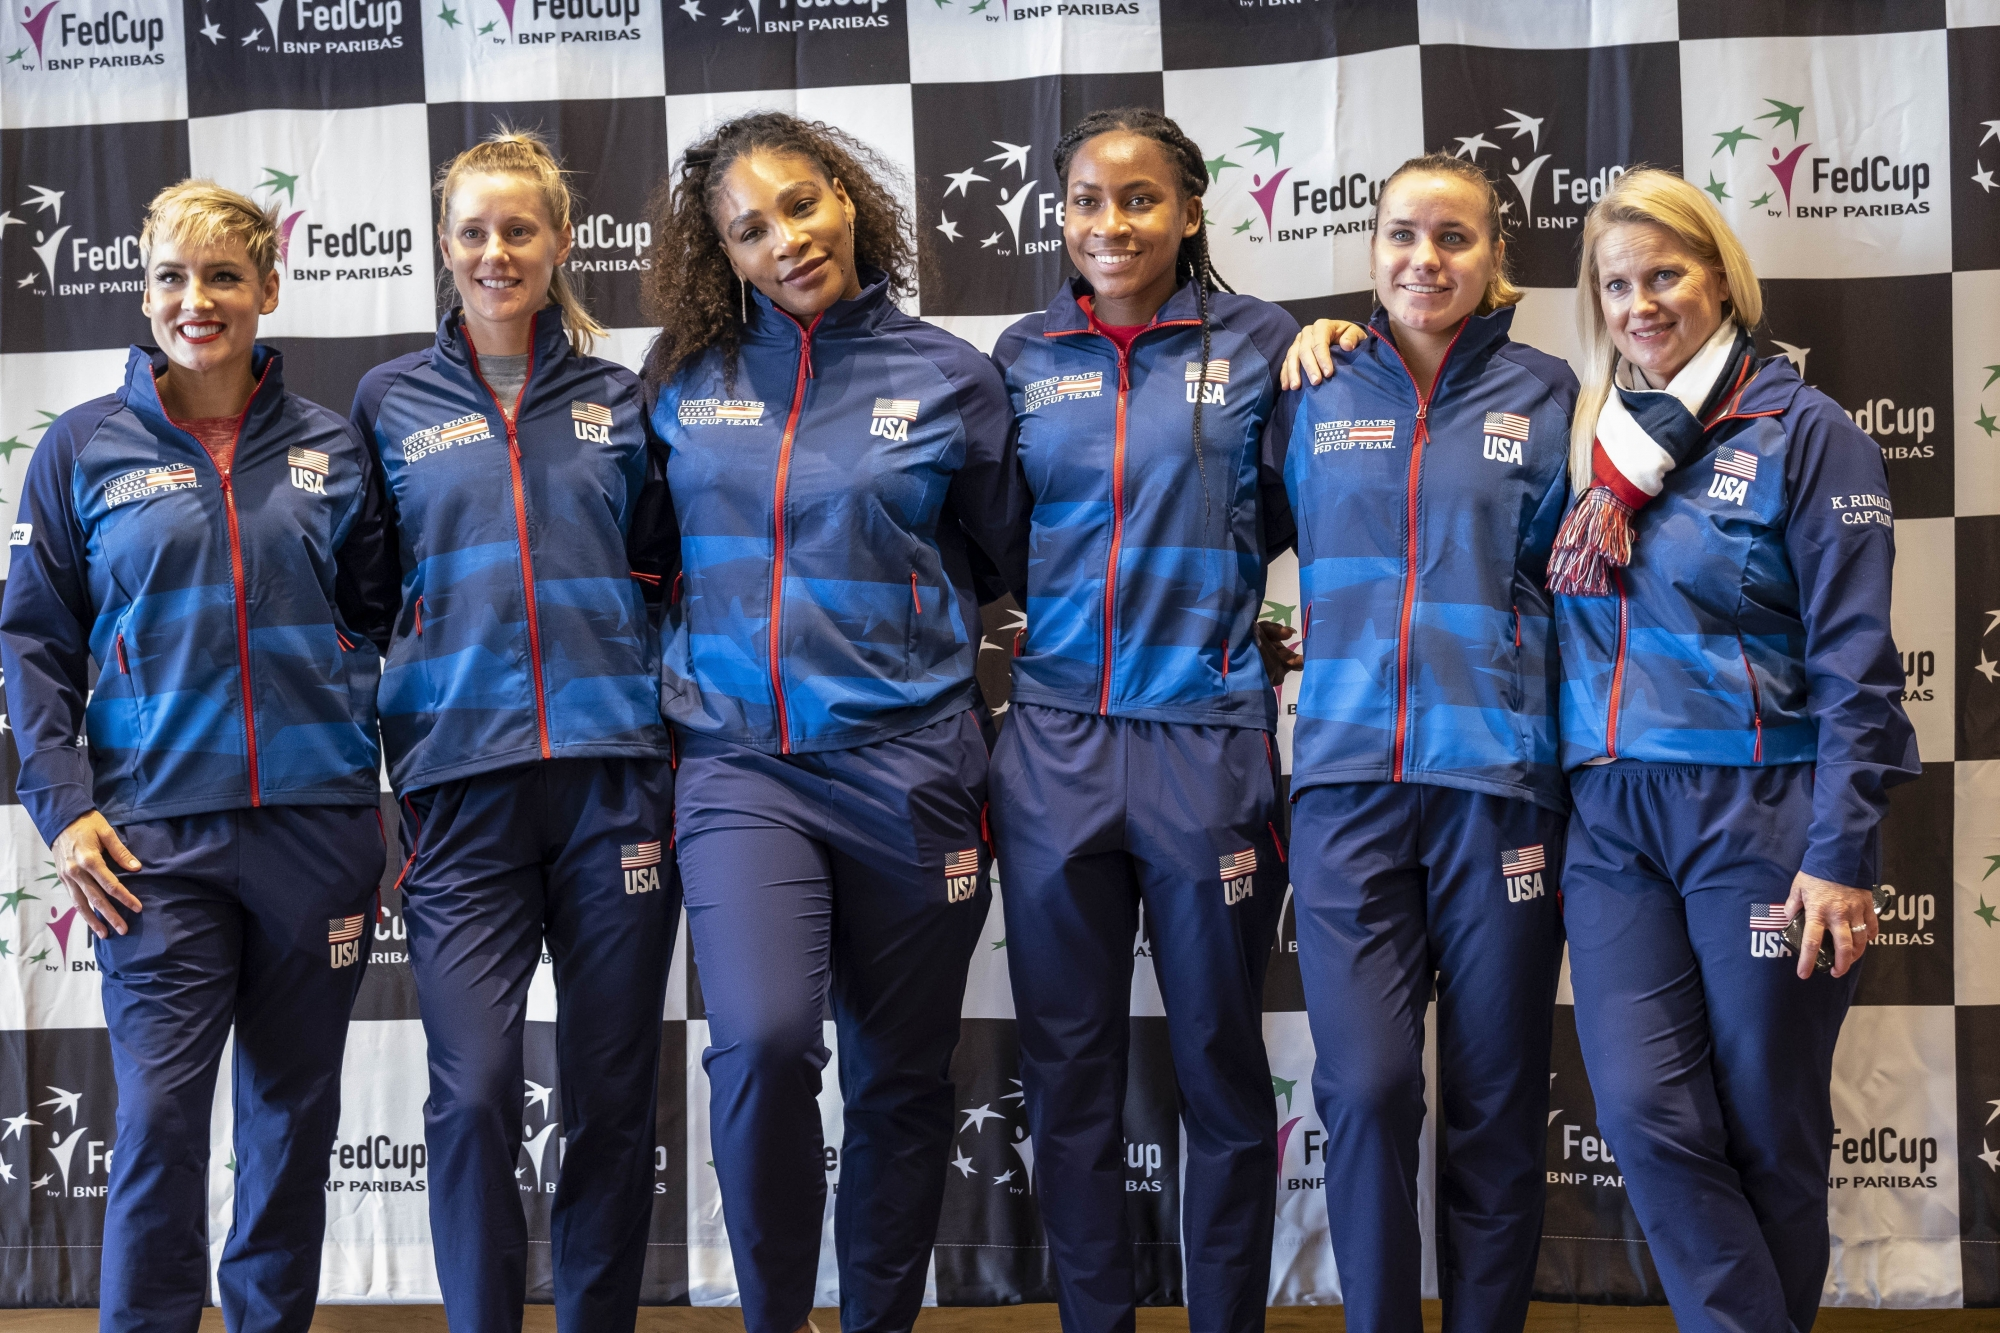 Fed cup 2020 fussball